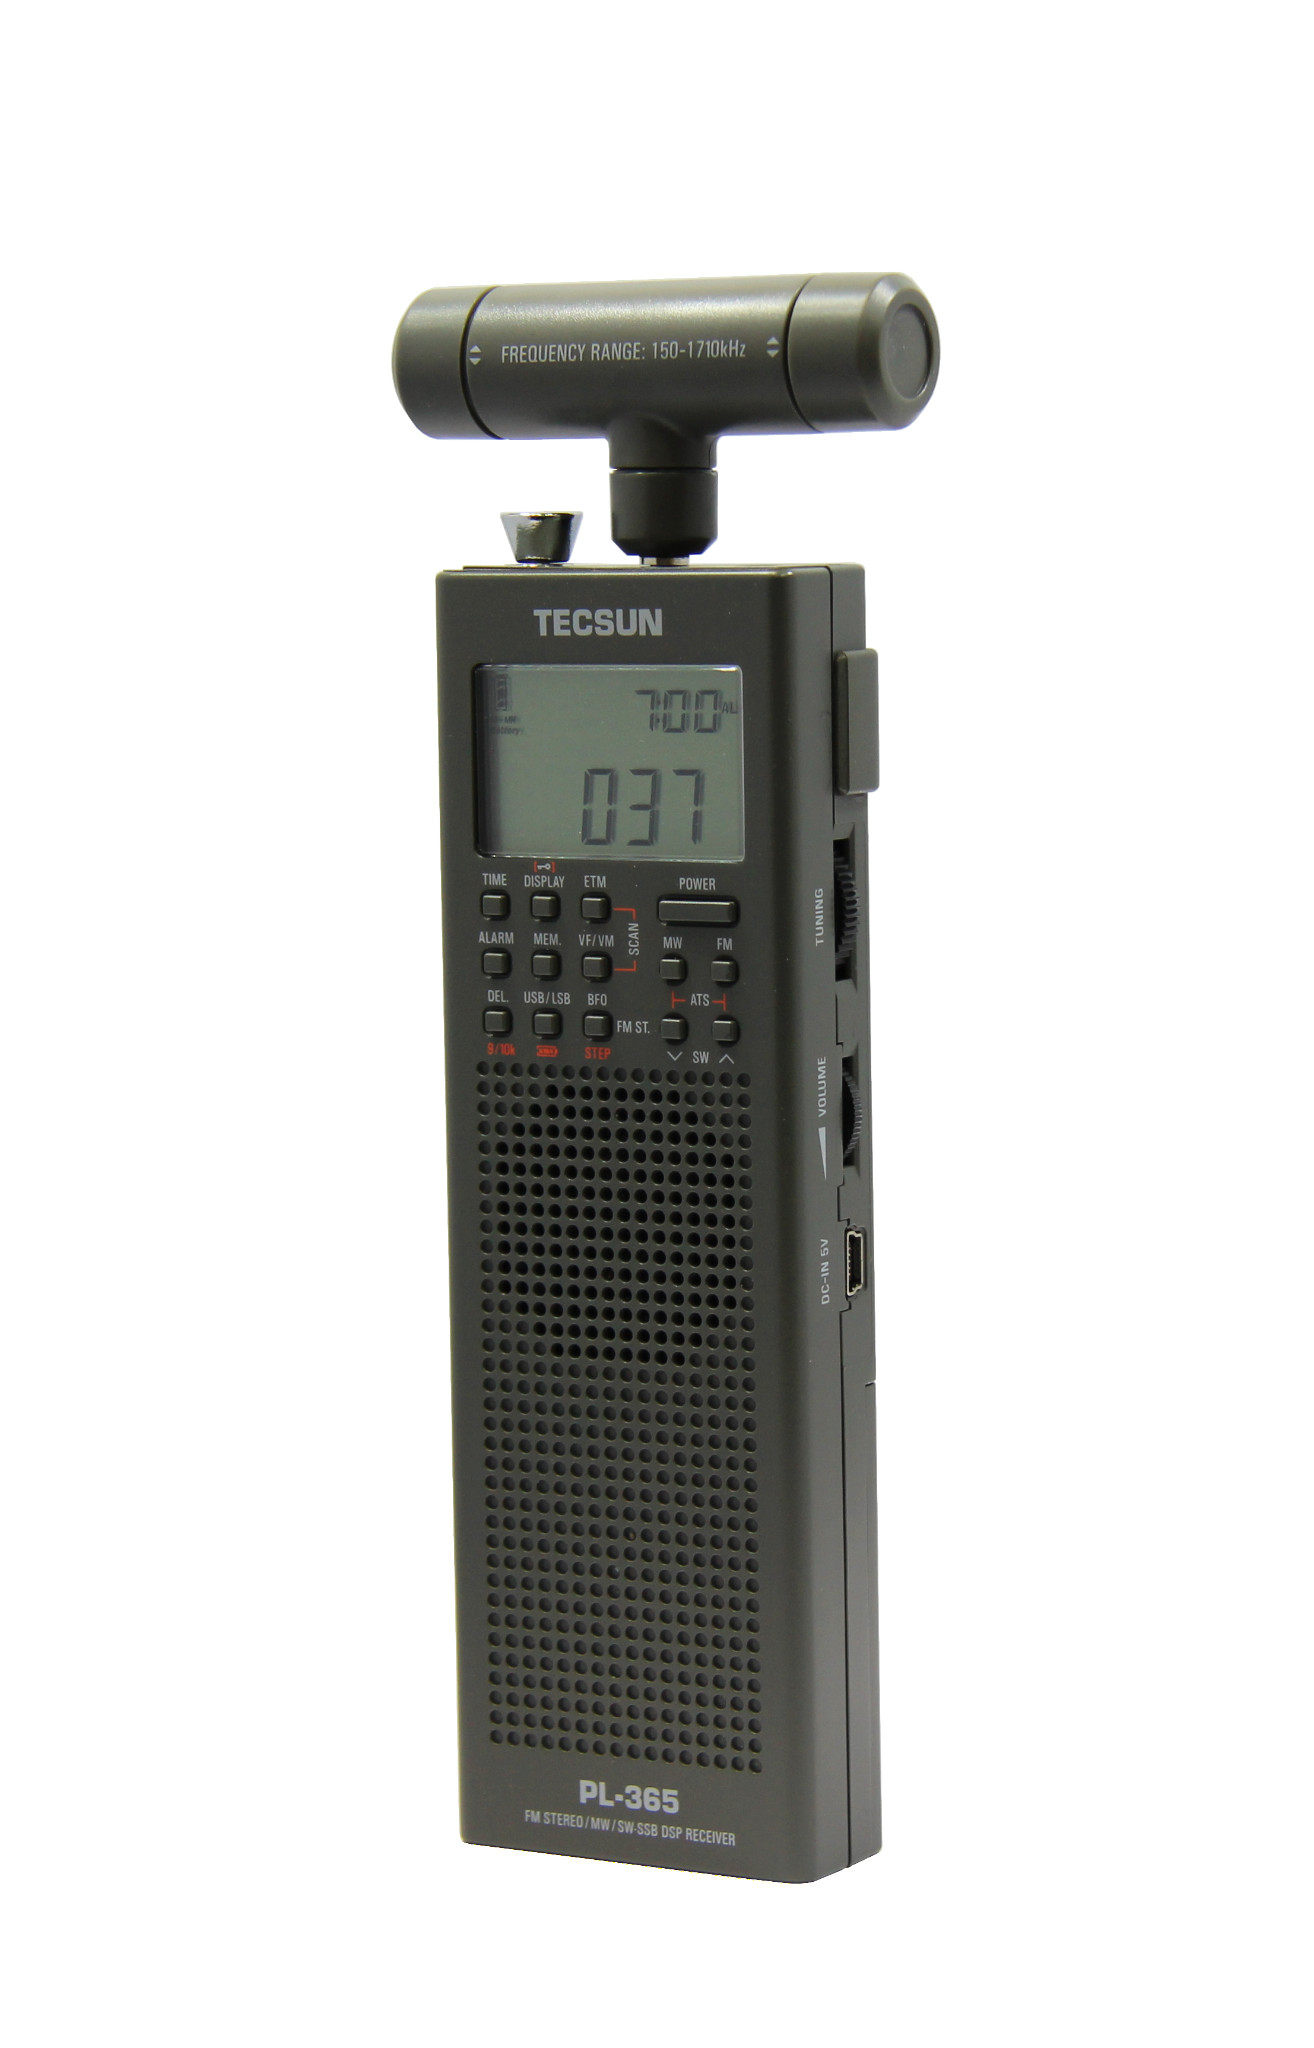 Review Tecsun Pl365 Hand Held Portable Radio Receiver Oxley Whip Antenna Operating At Medium Wave Frequency Frontside